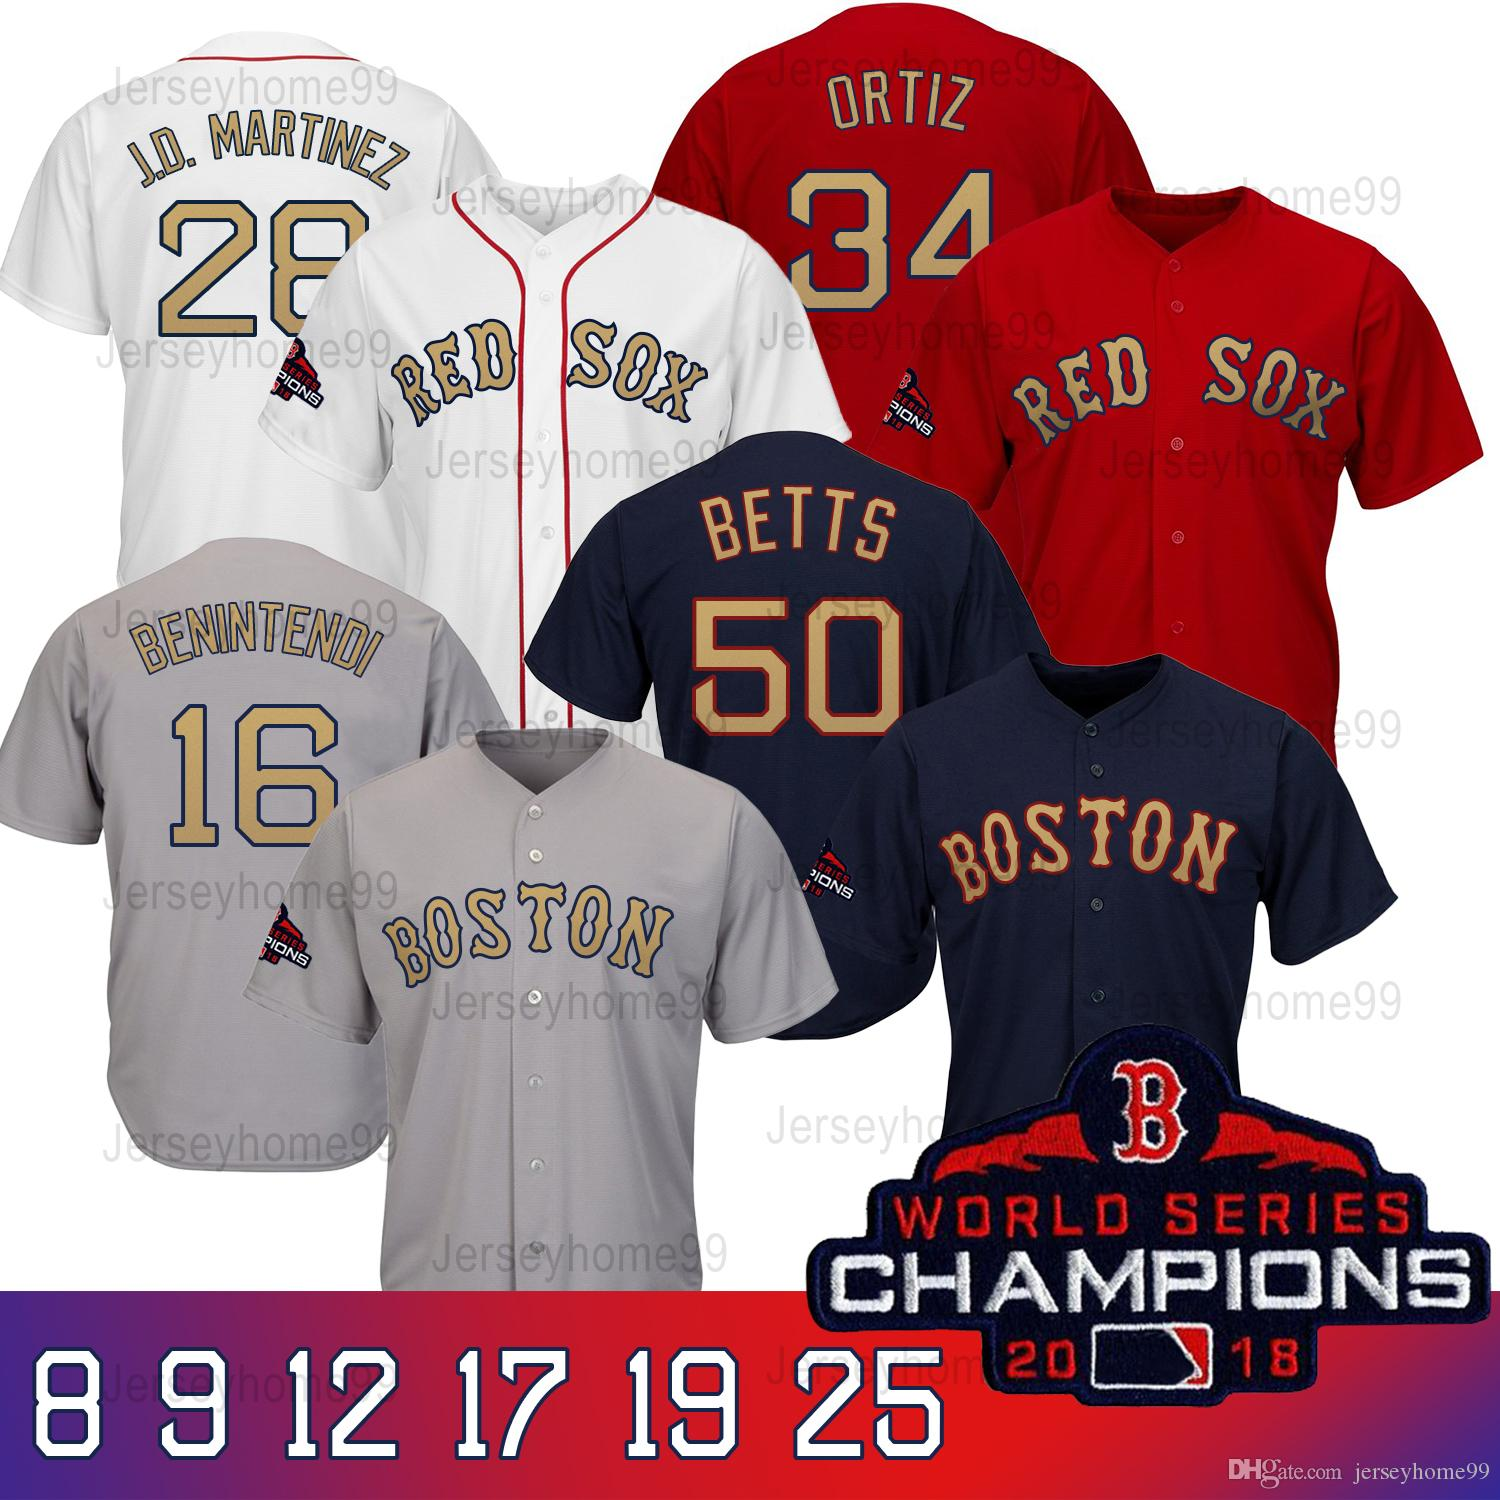 2019 2018 Boston Red Sox World Series Champions Jerseys Men S Women  Toddlers Baseball Jerseys With Champion Patch S XXXL White Gray Red Blue  From ... 9d1c1502755